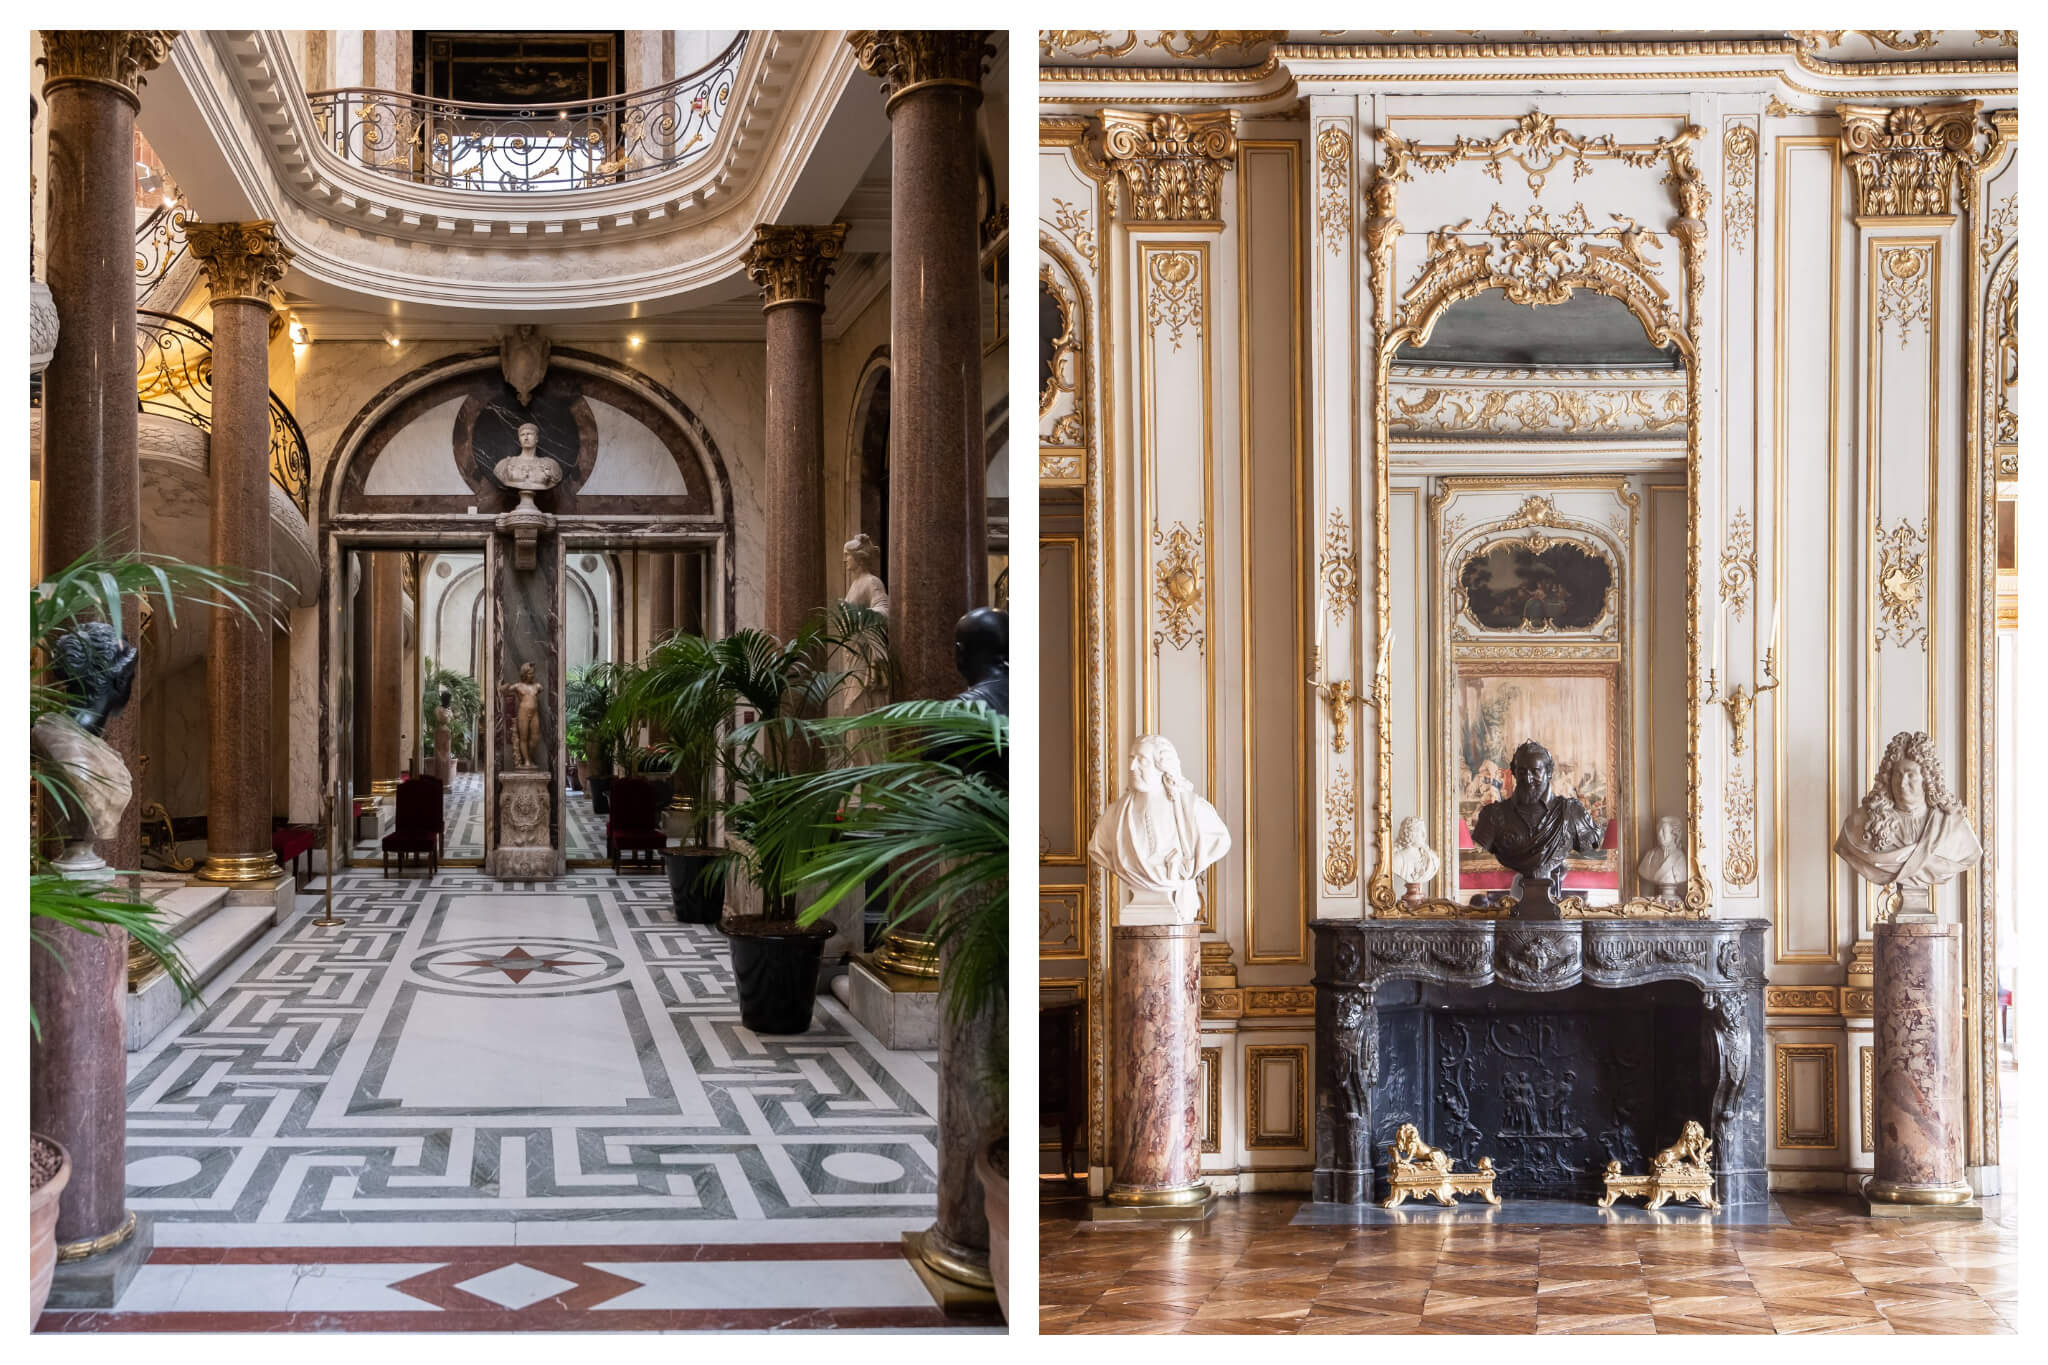 Left and right, the beautiful interiors of the Musée Jacquemart-André, which is an ornate hotel particulier in the 8th district of Paris.